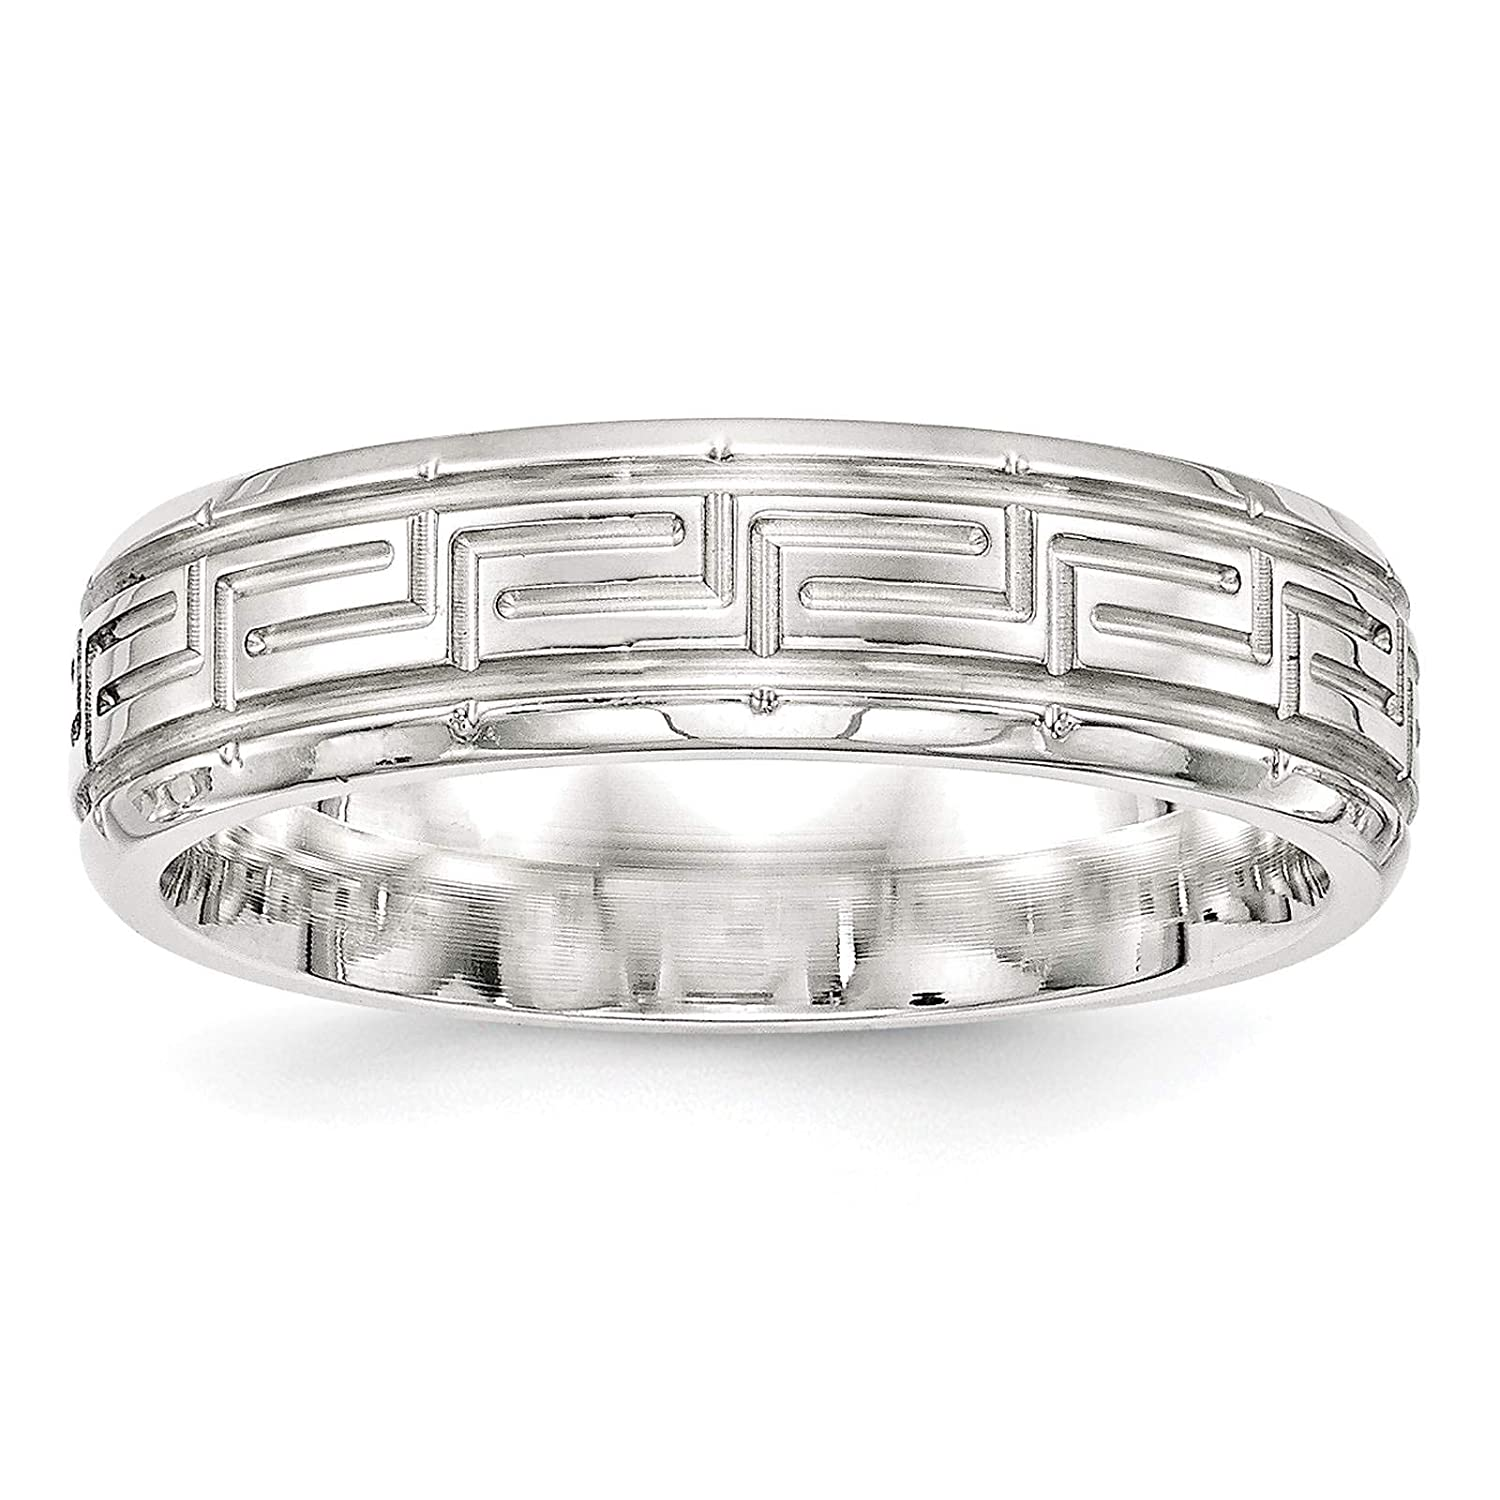 925 Sterling Silver Polished 6mm Fancy Beveled Edge Wedding Ring Band Size 7-13.5